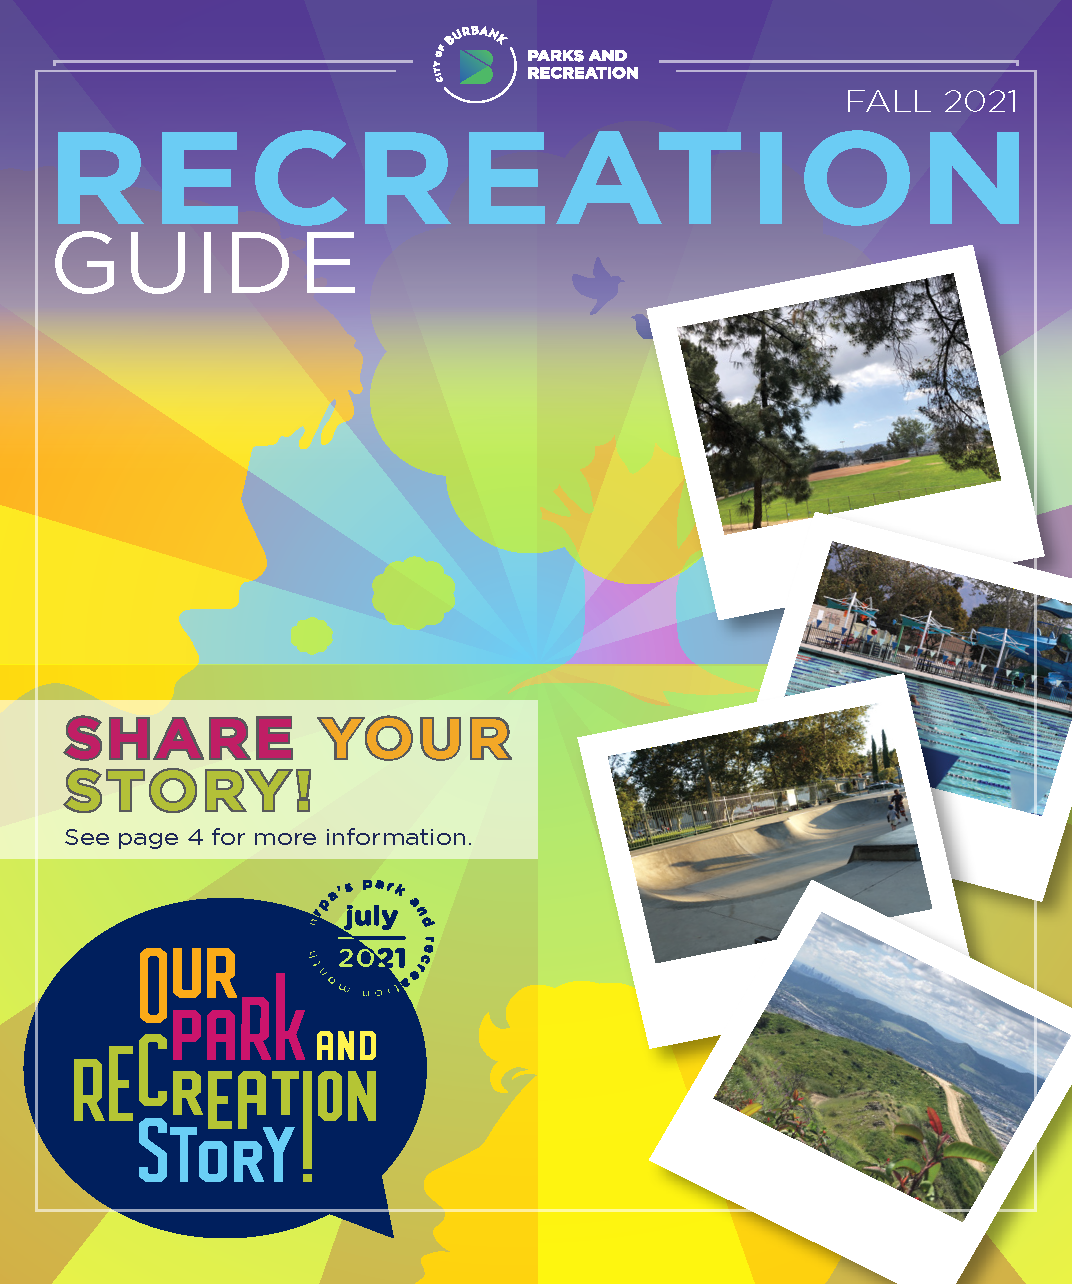 Spring Recreation Guide cover feature a 60 year old woman participating in a virtual bingo game.